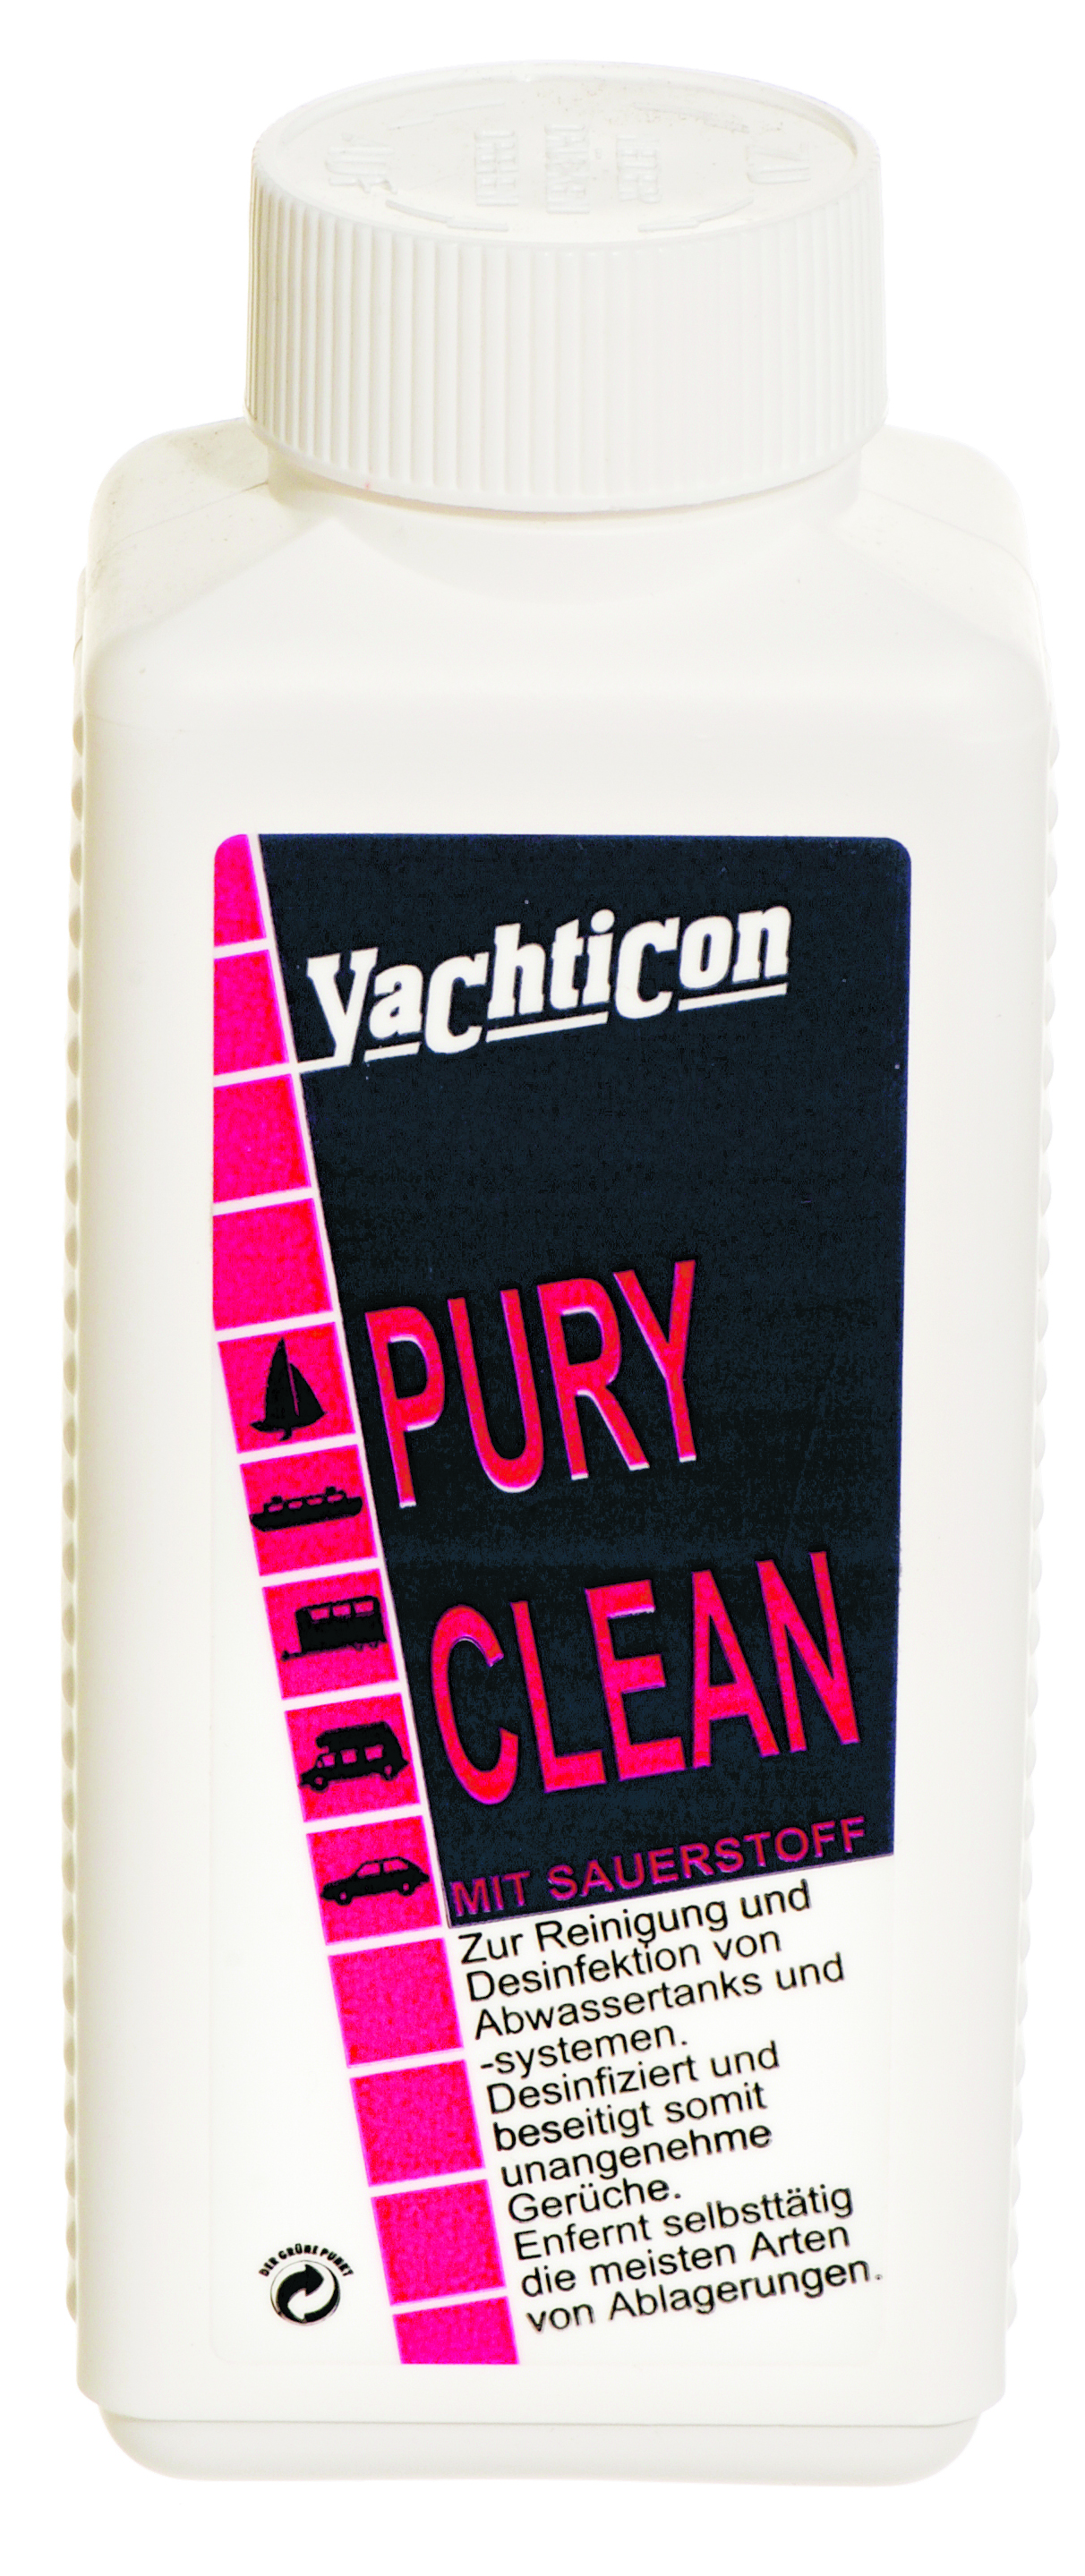 Yachticon Pury Clean 500 gr.